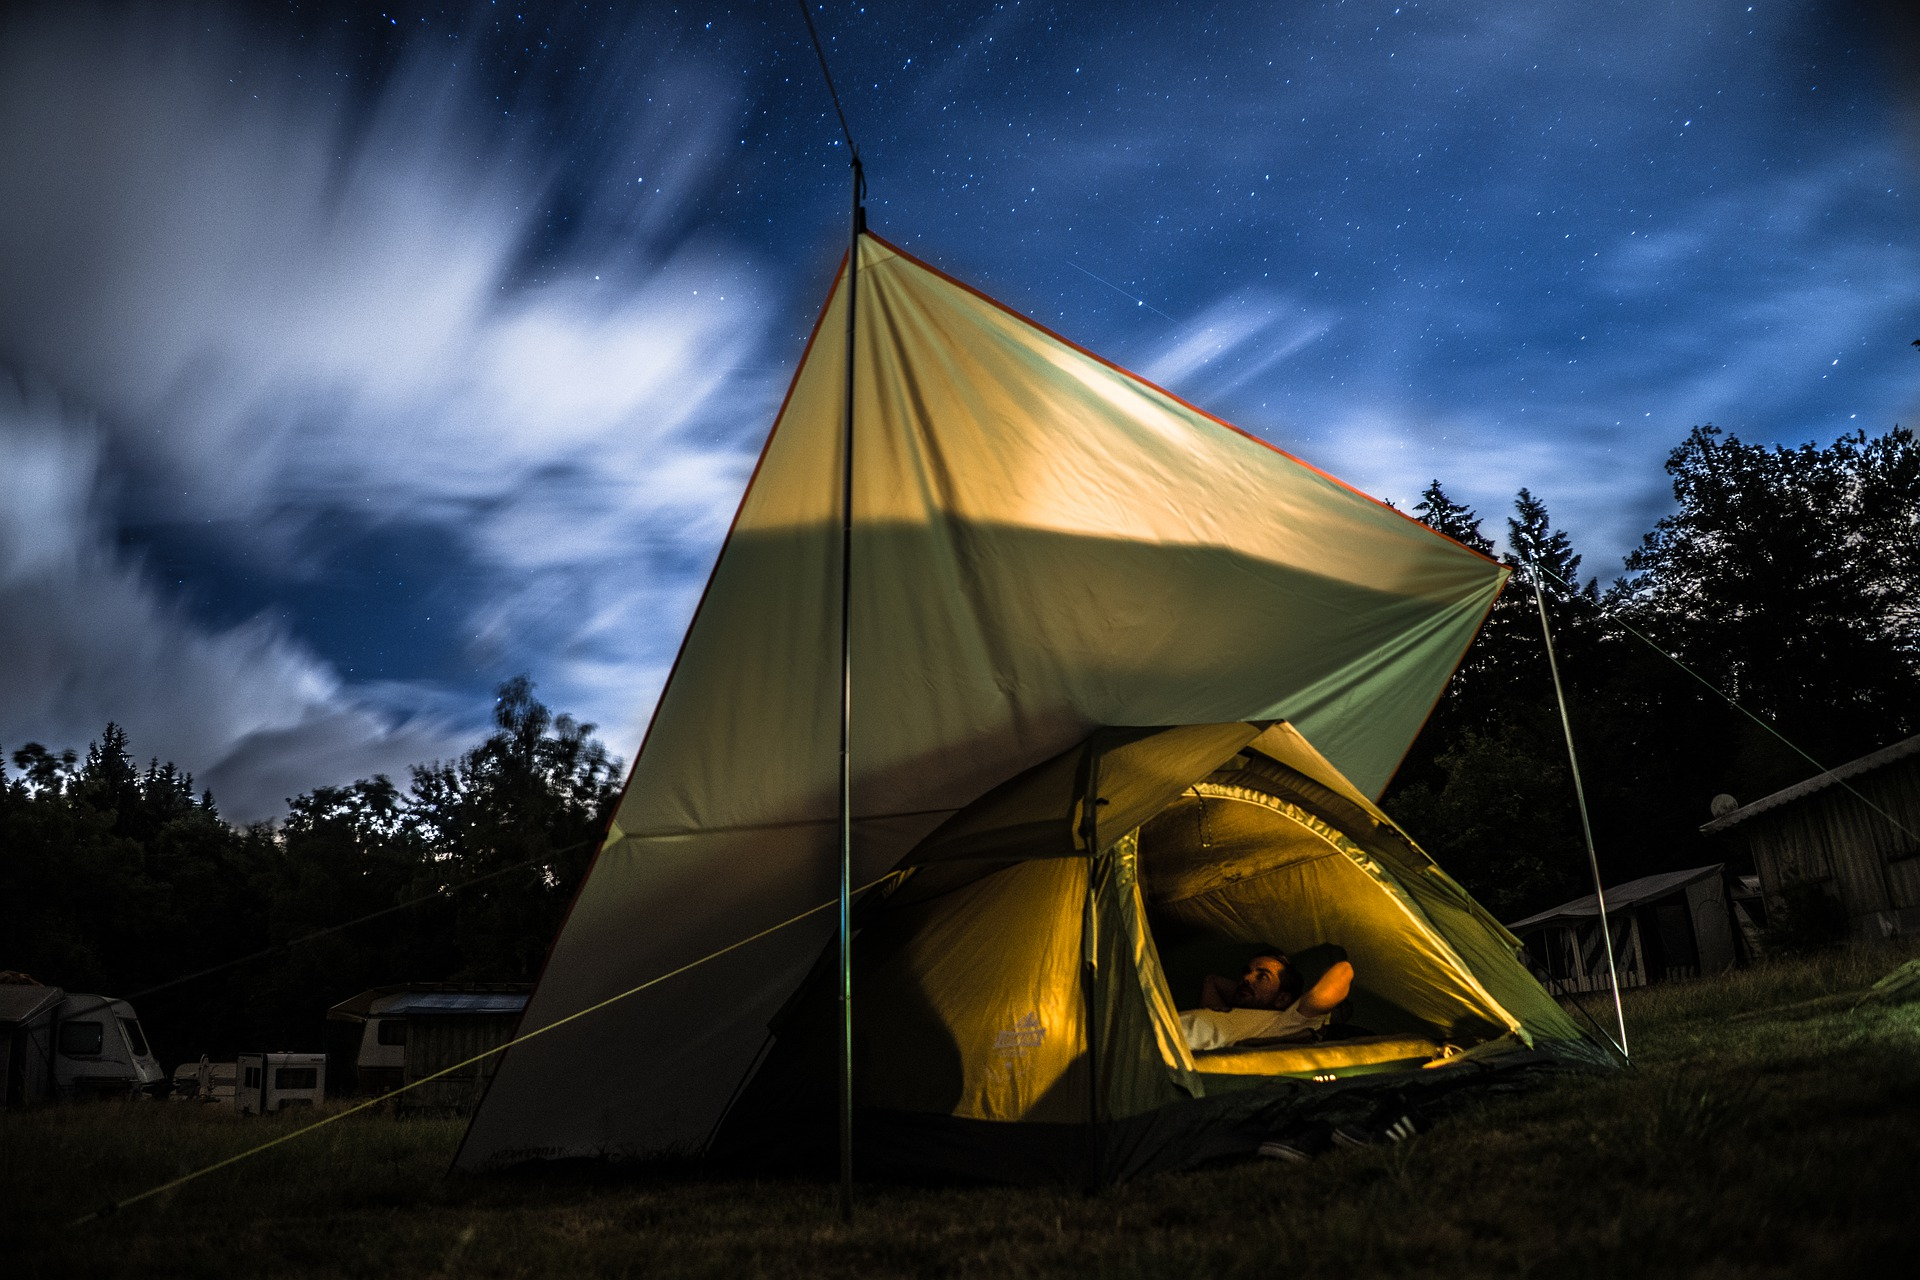 Enjoy The Thrills Of HOH Rainforest Camping